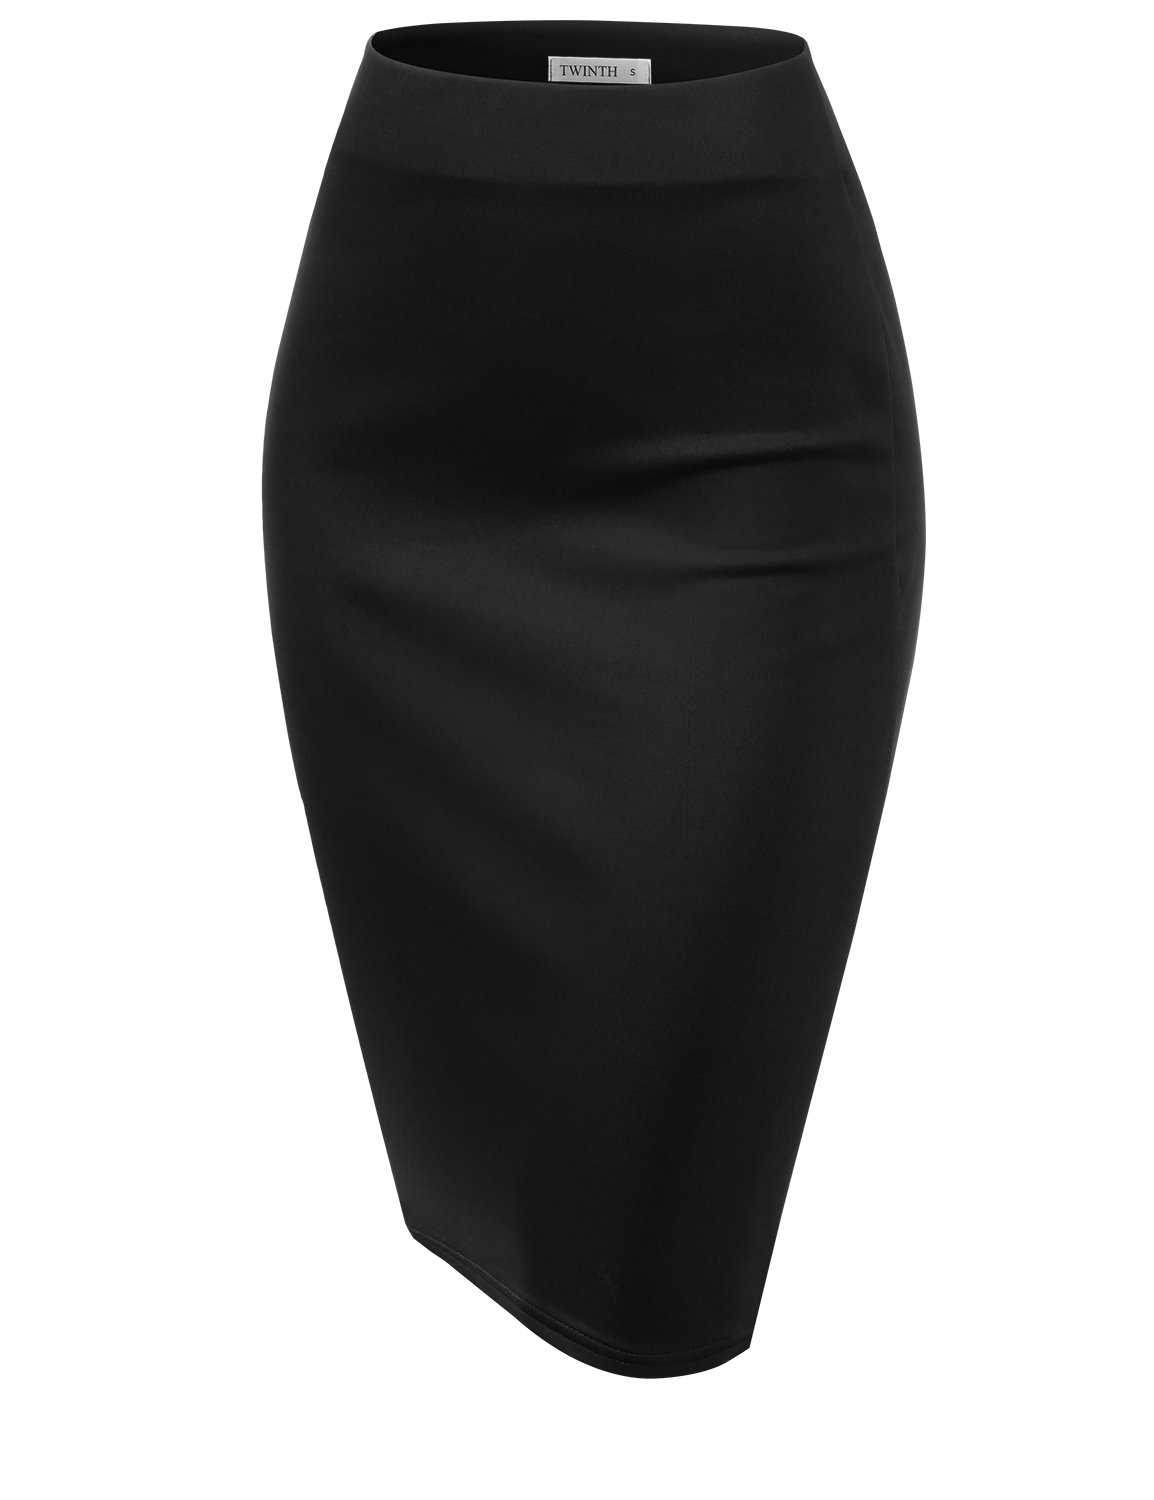 CLOVERY Slim Fit Wear to Work Business Party Bodycon Plussize Pencil Skirts Black M